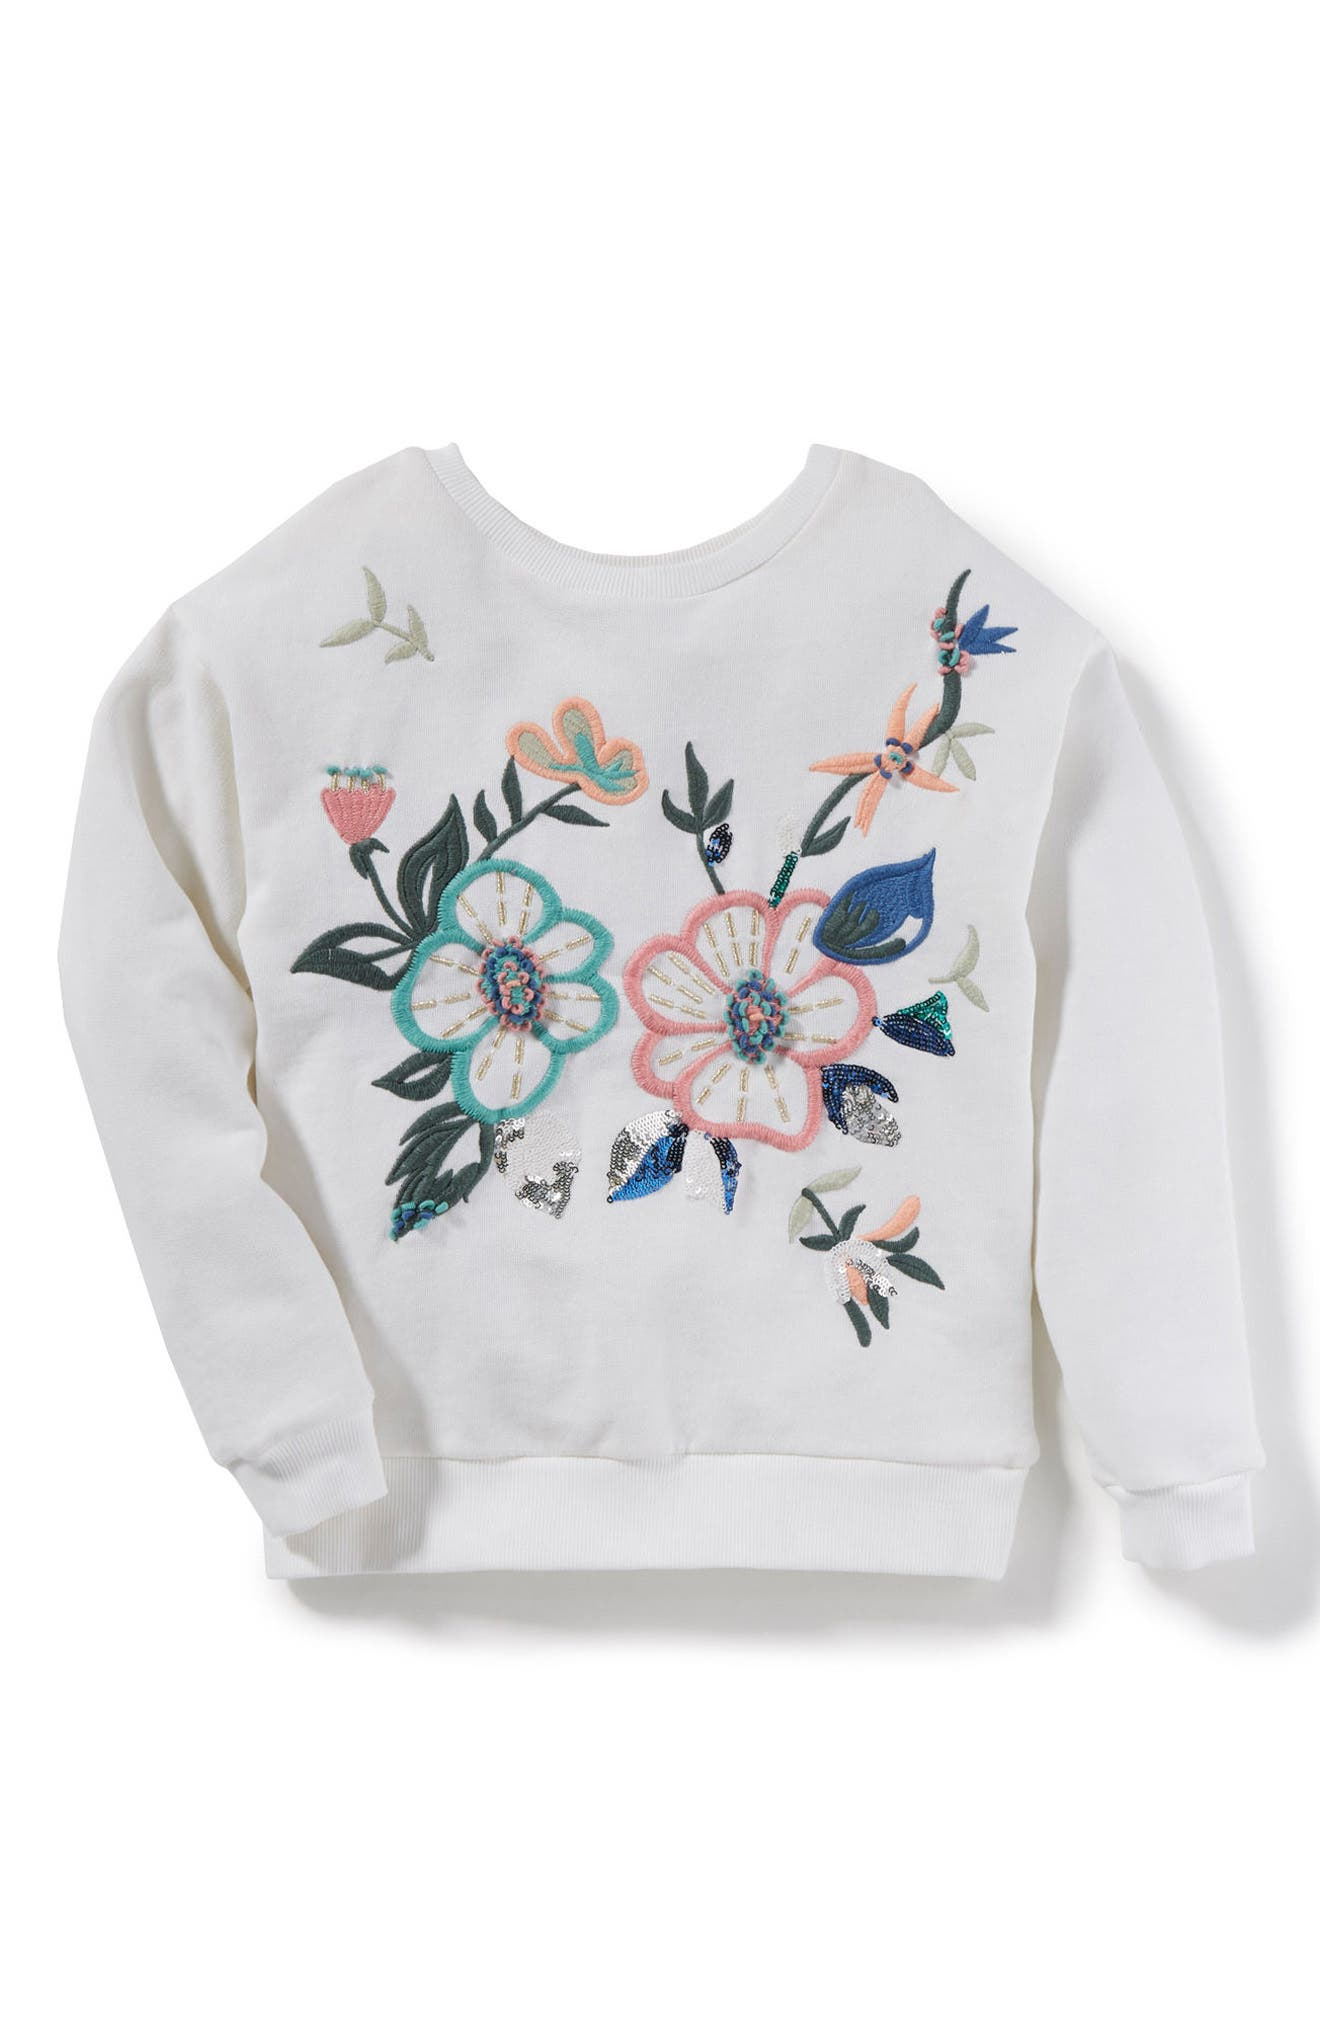 Kayla Sweatshirt,                             Main thumbnail 1, color,                             100